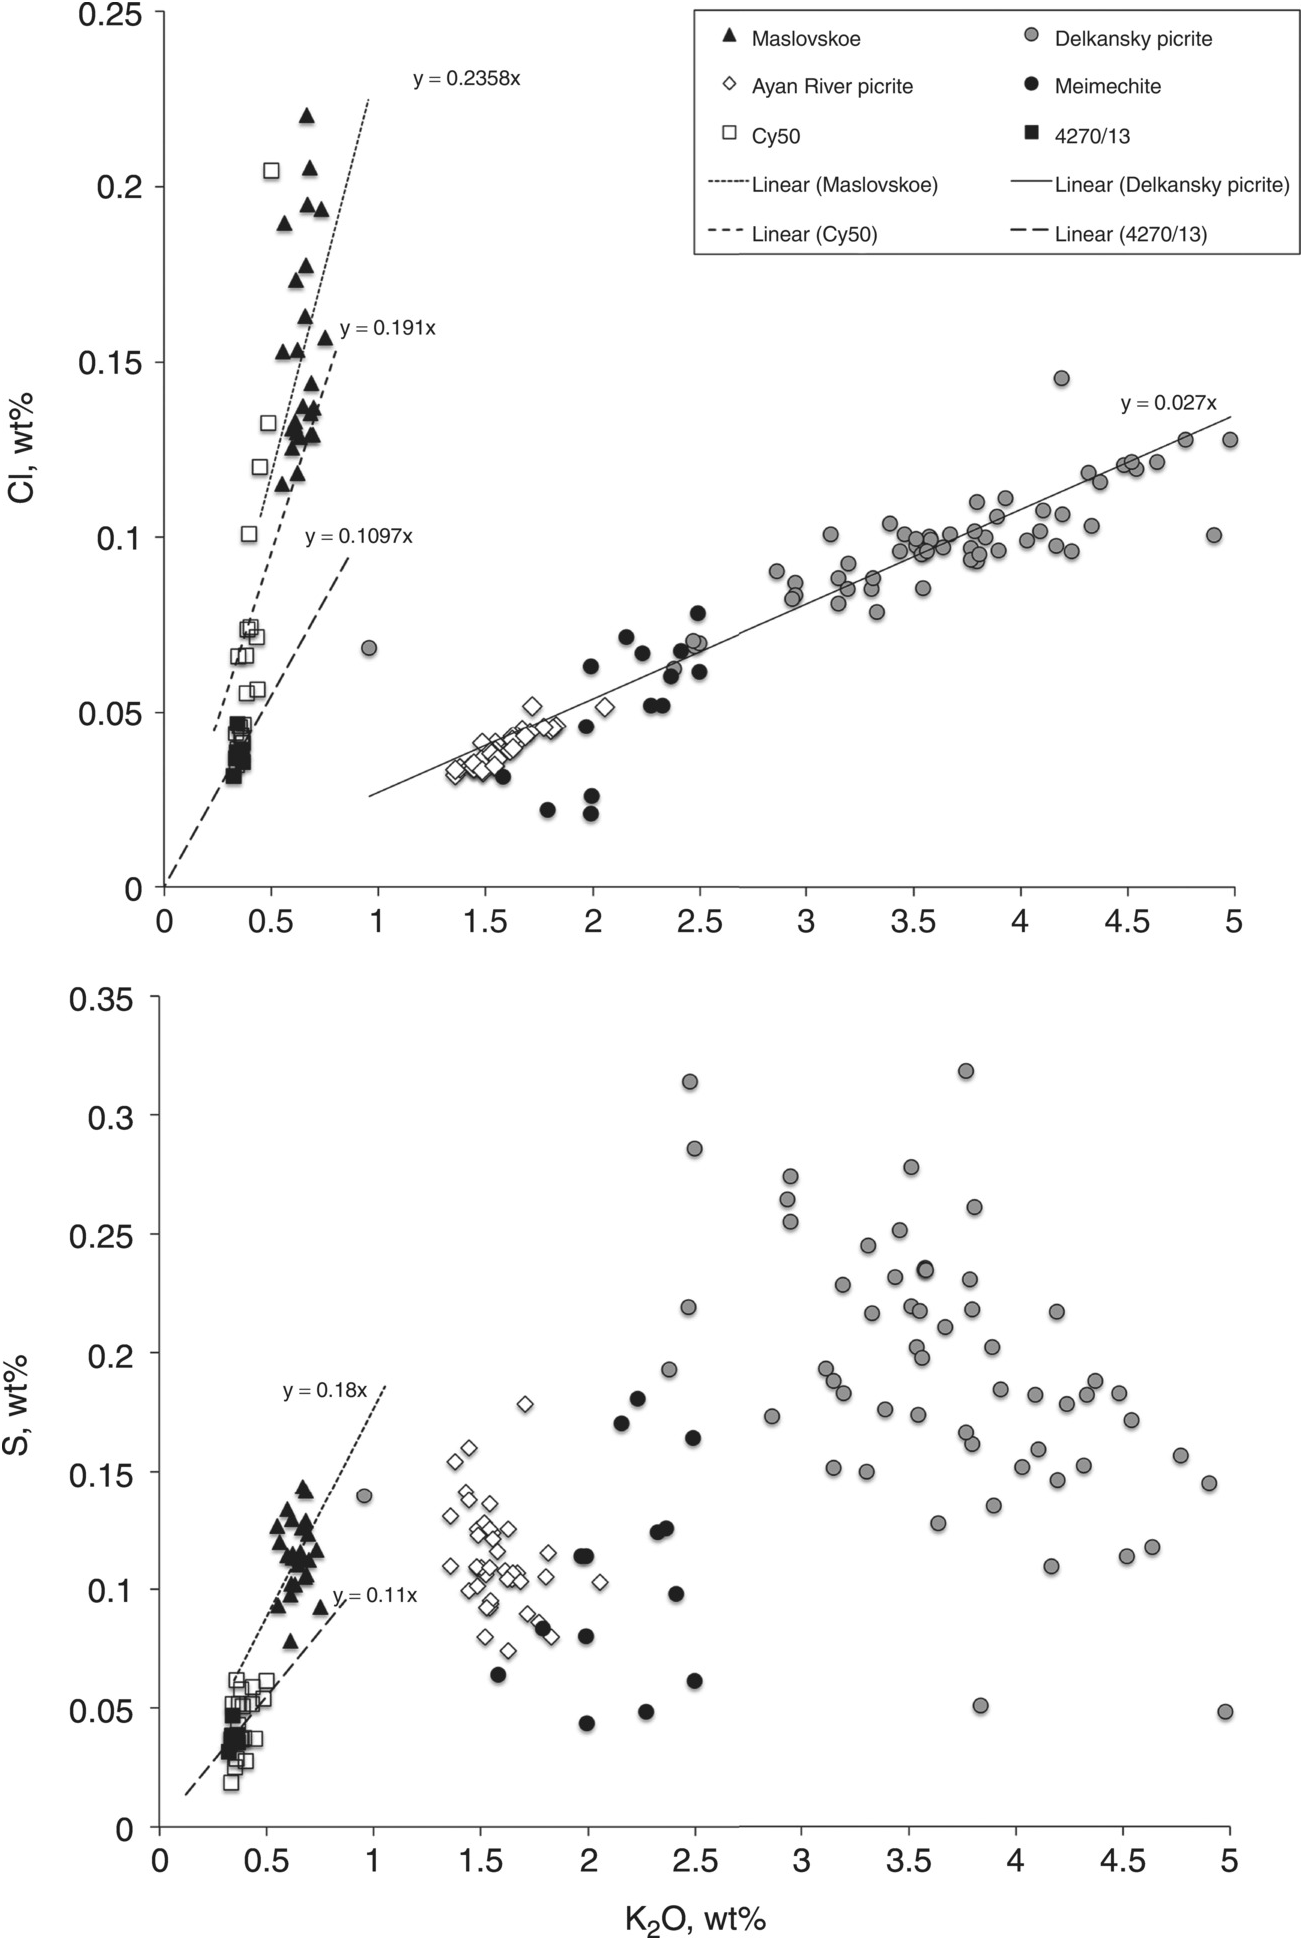 Assessing gas and tephra release in the present day and